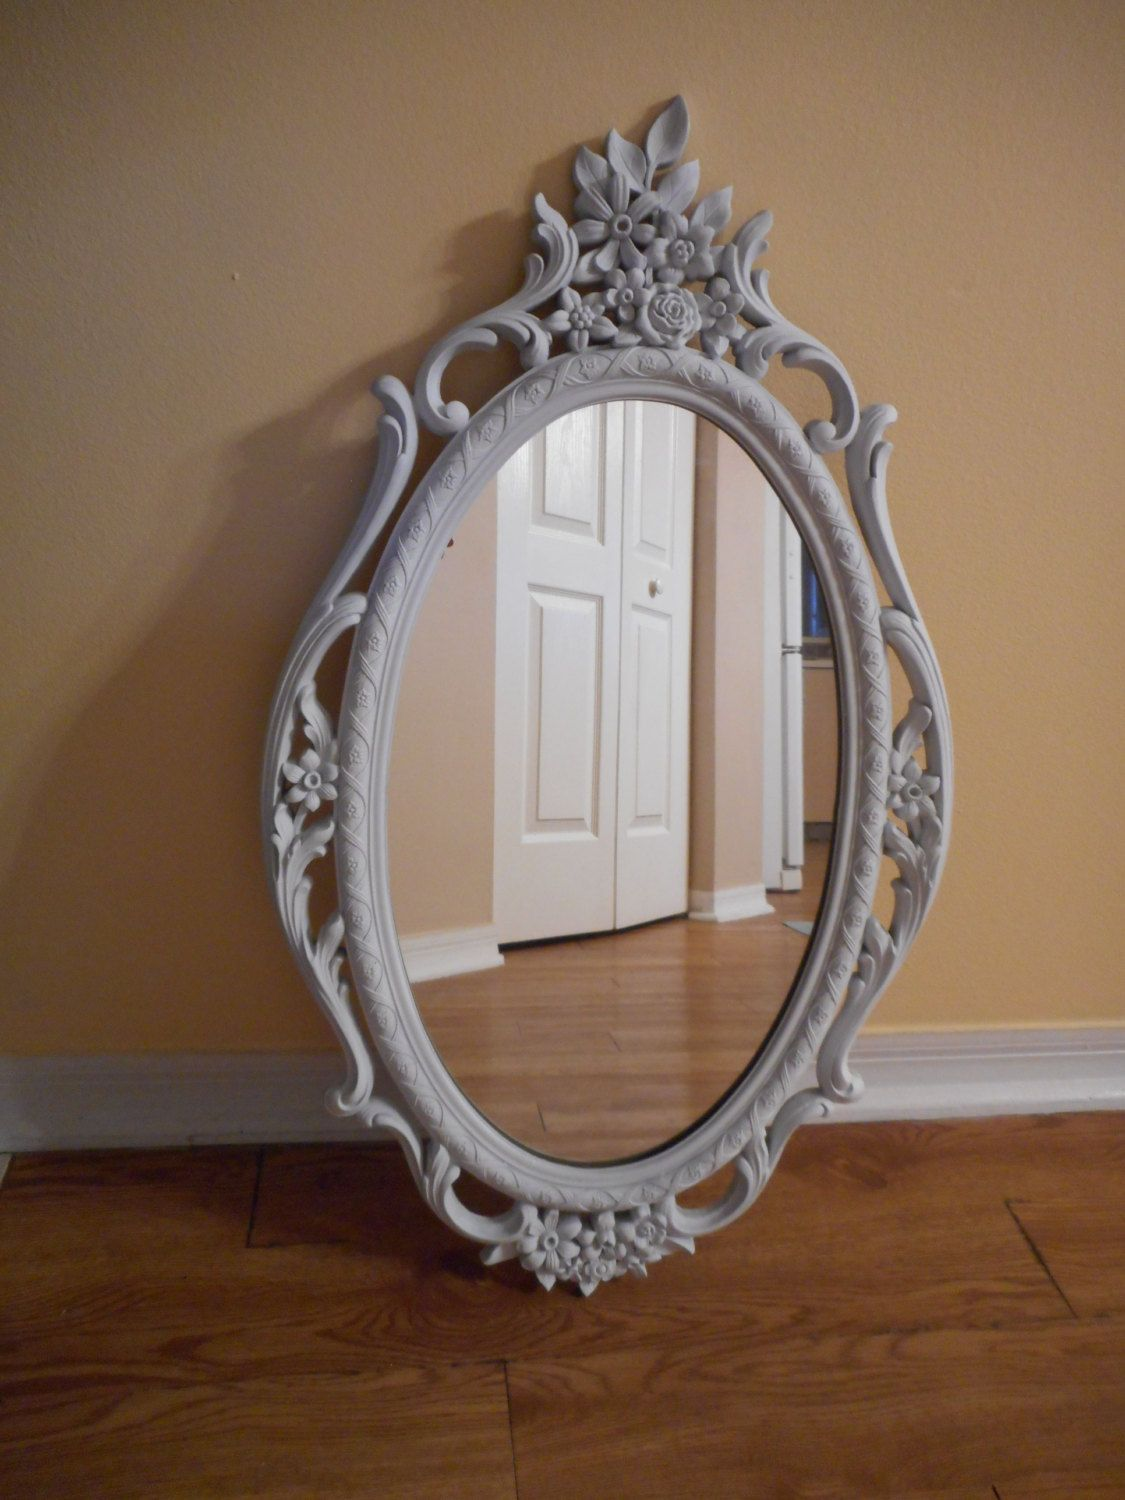 Shabby Chic Wall Mirror authentic vintage large 1965 victorian floral syroco mirror #5114